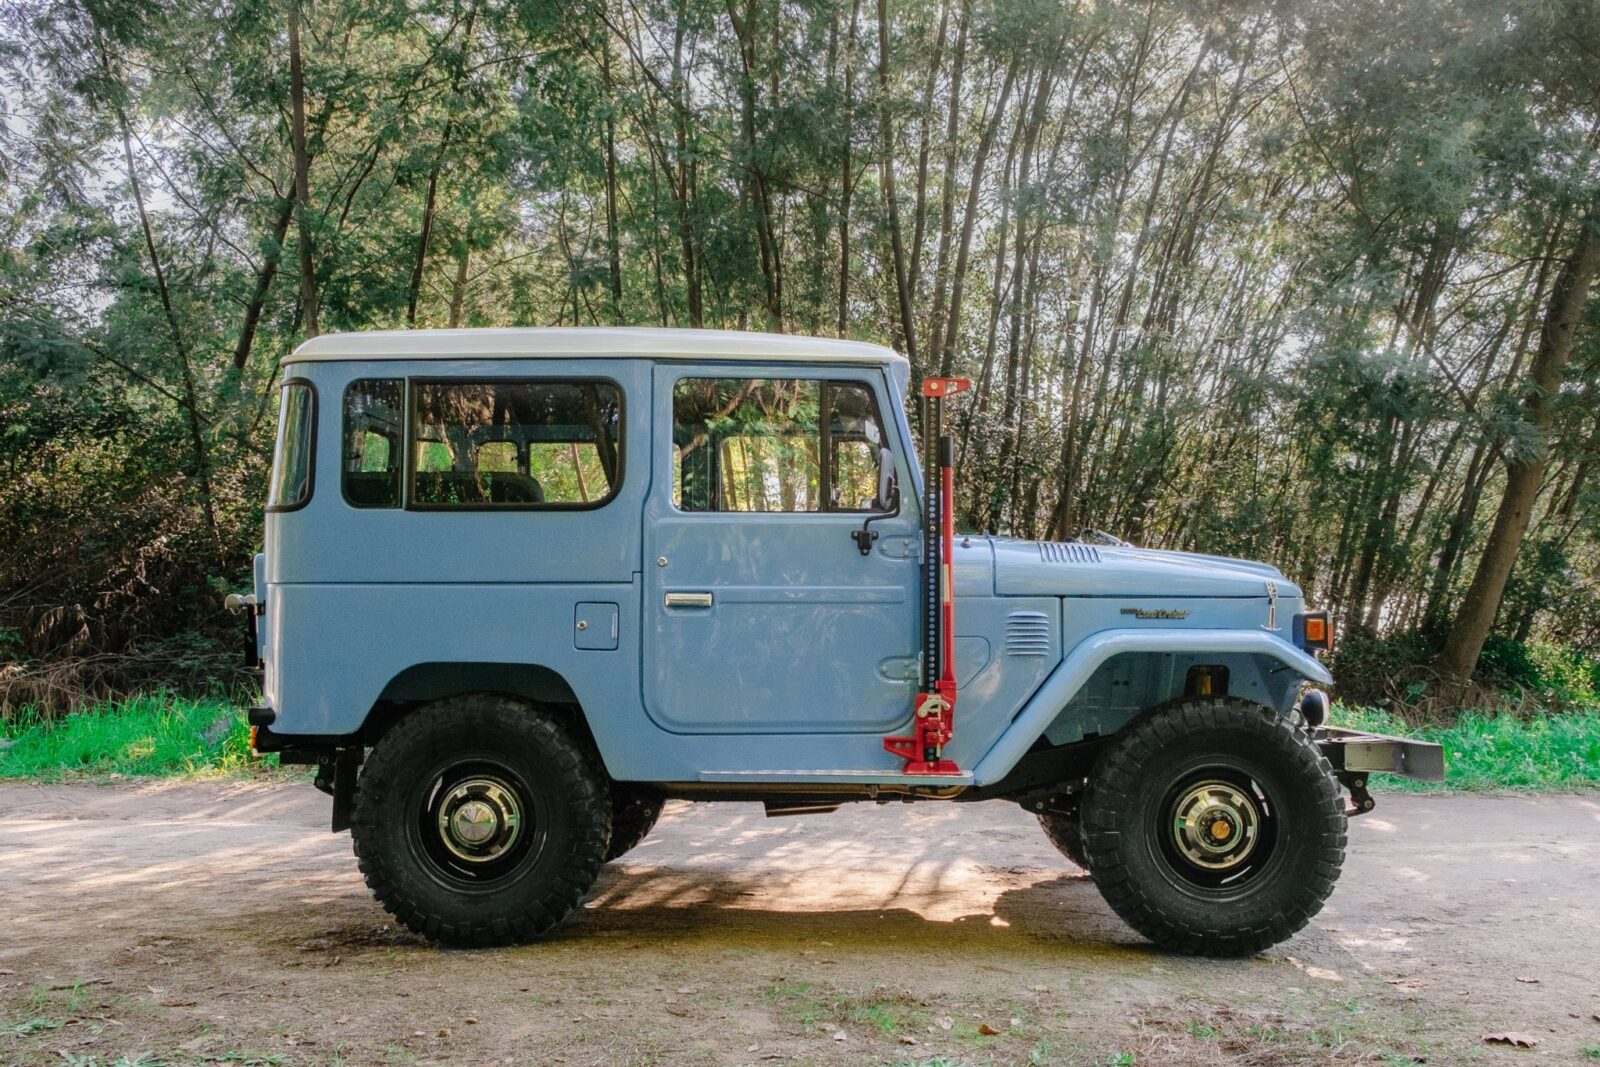 toyota land cruiser bj40 10 1600x1067 - A Retro Mod Toyota Land Cruiser BJ40 by Legacy Overland